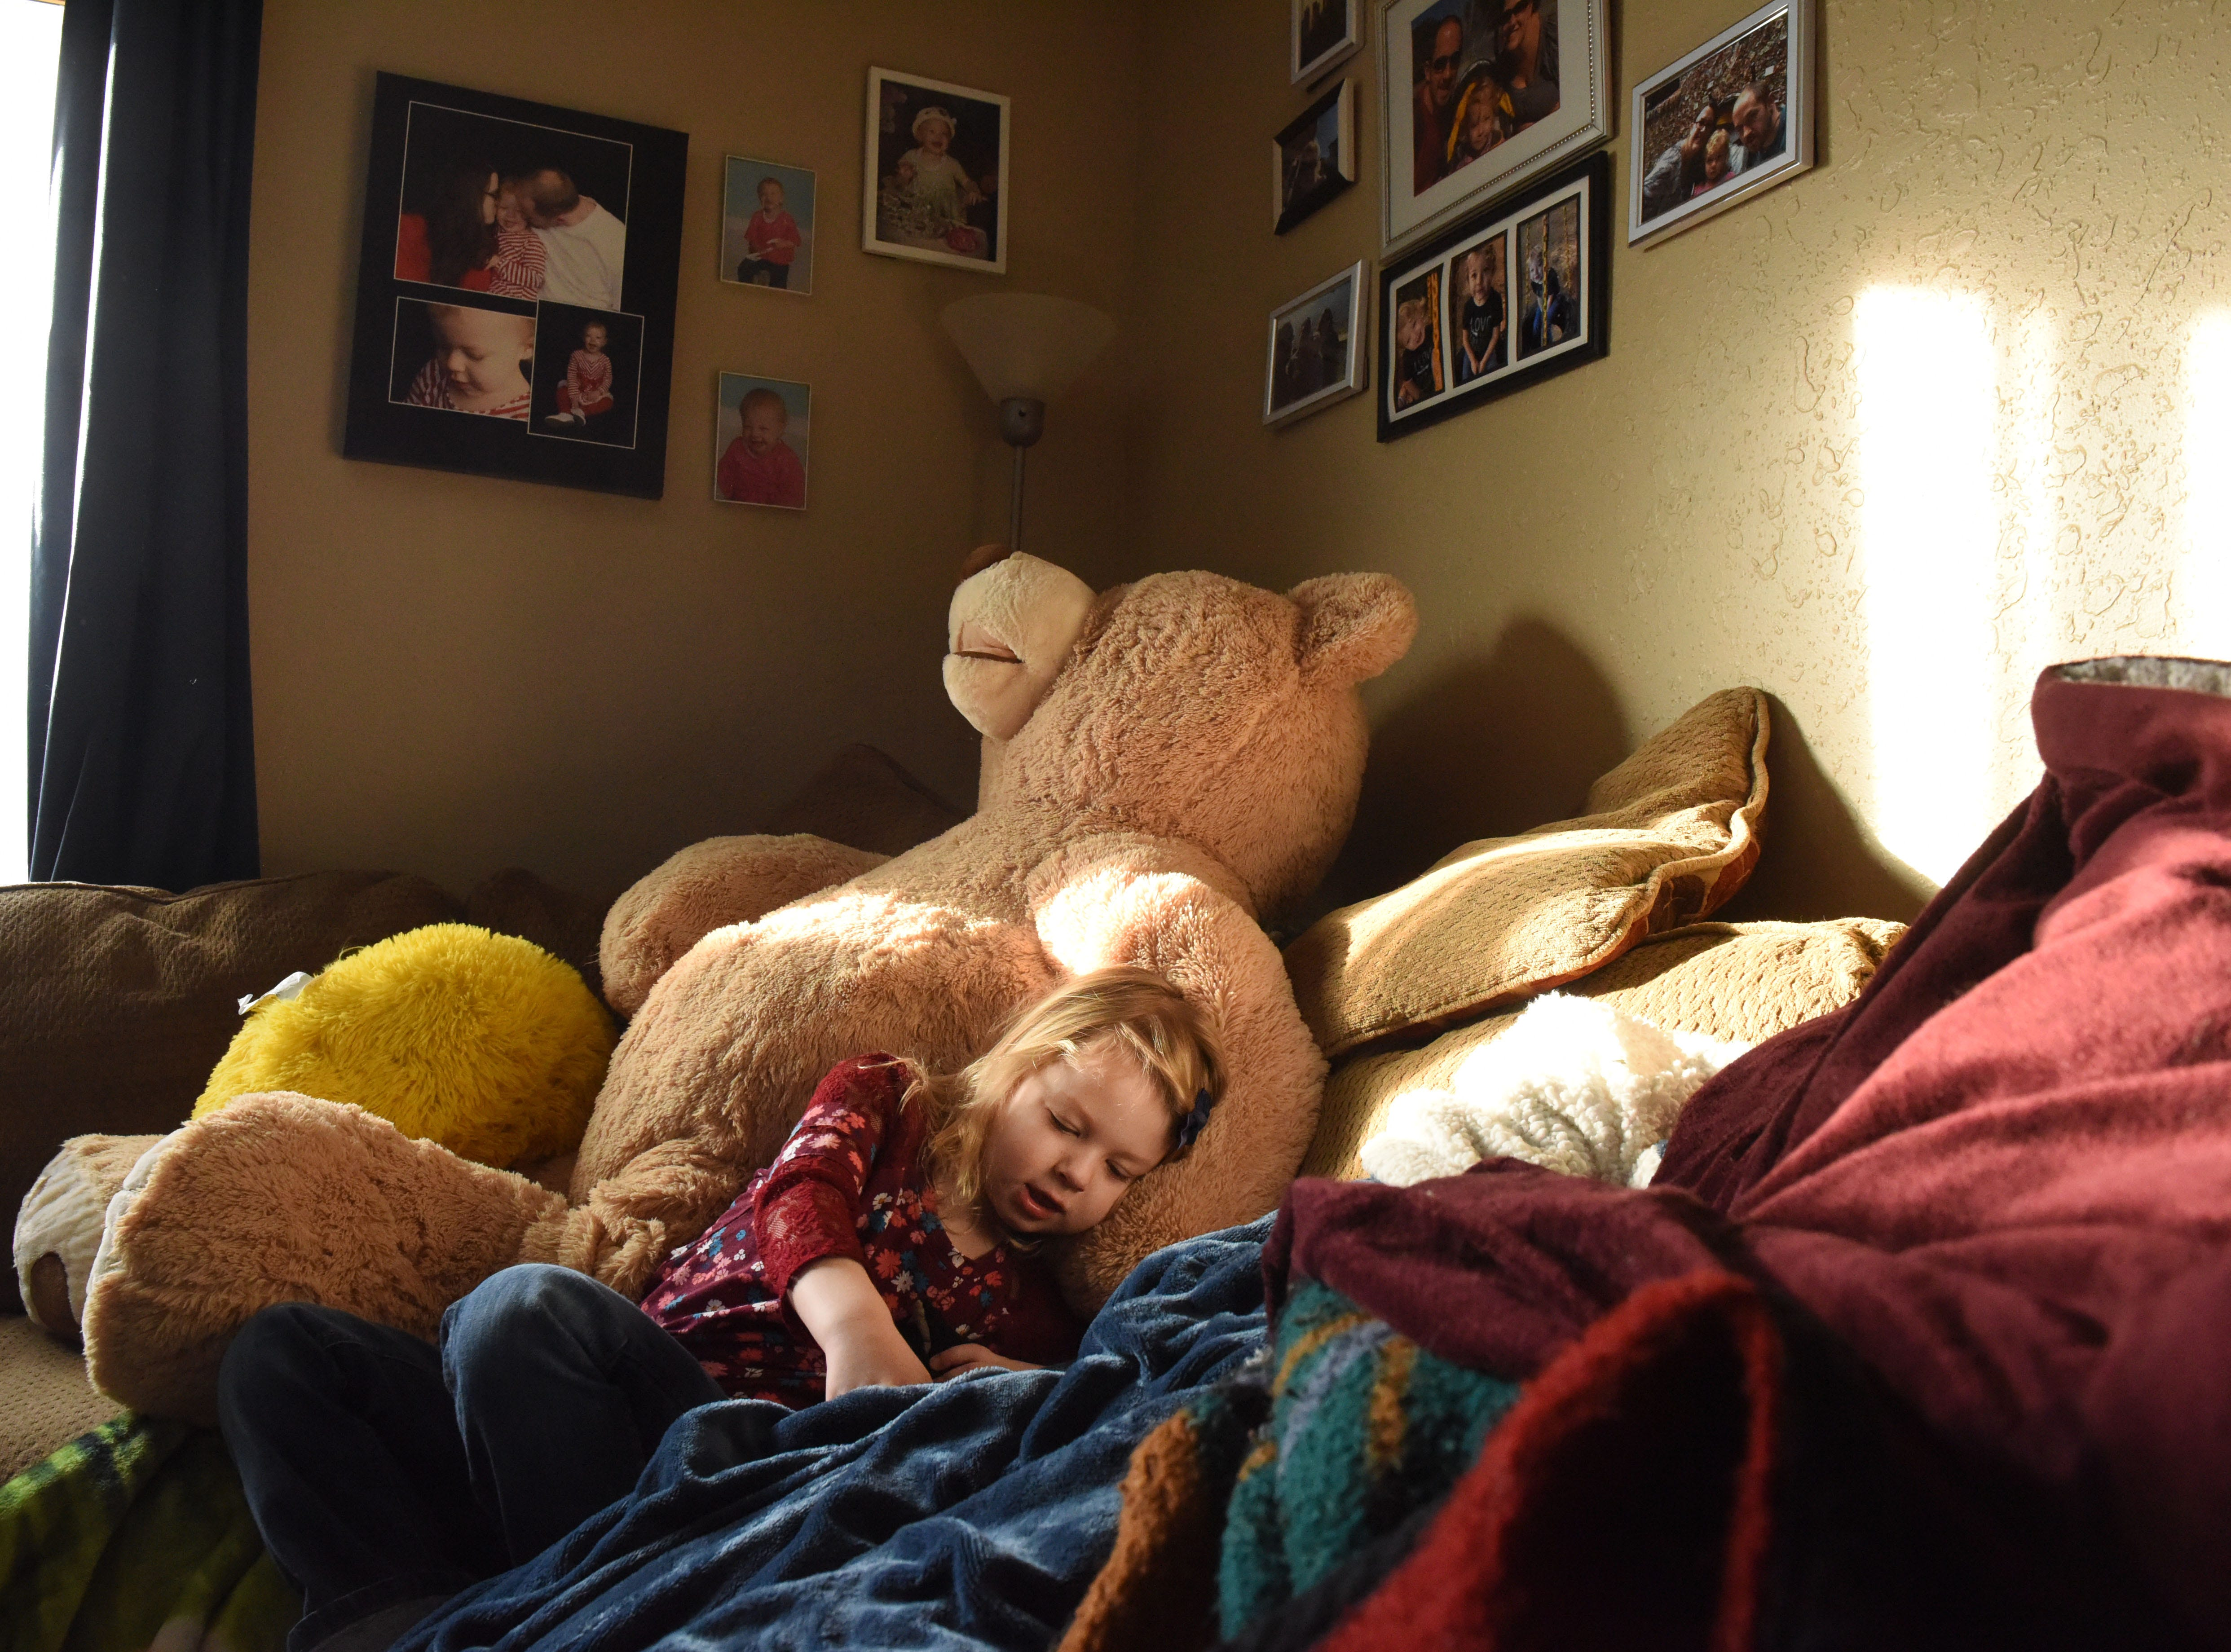 Nikole Trull, 4, rests on the couch in her living room in Sioux Falls, S.D., Friday, Feb. 1, 2019.